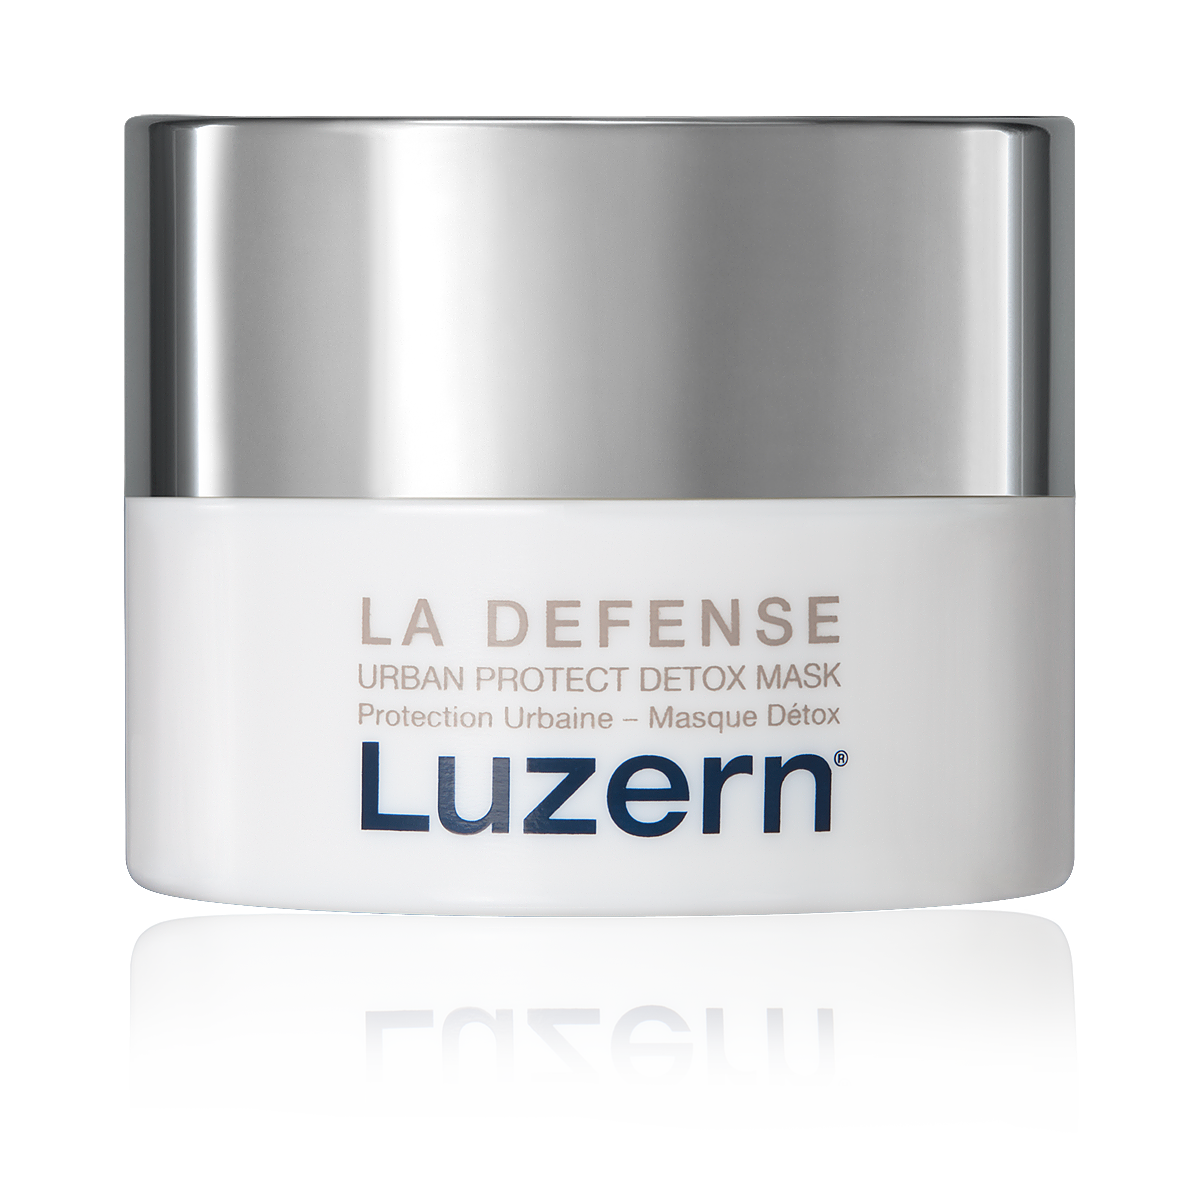 Luzern La Defense Detox Mask